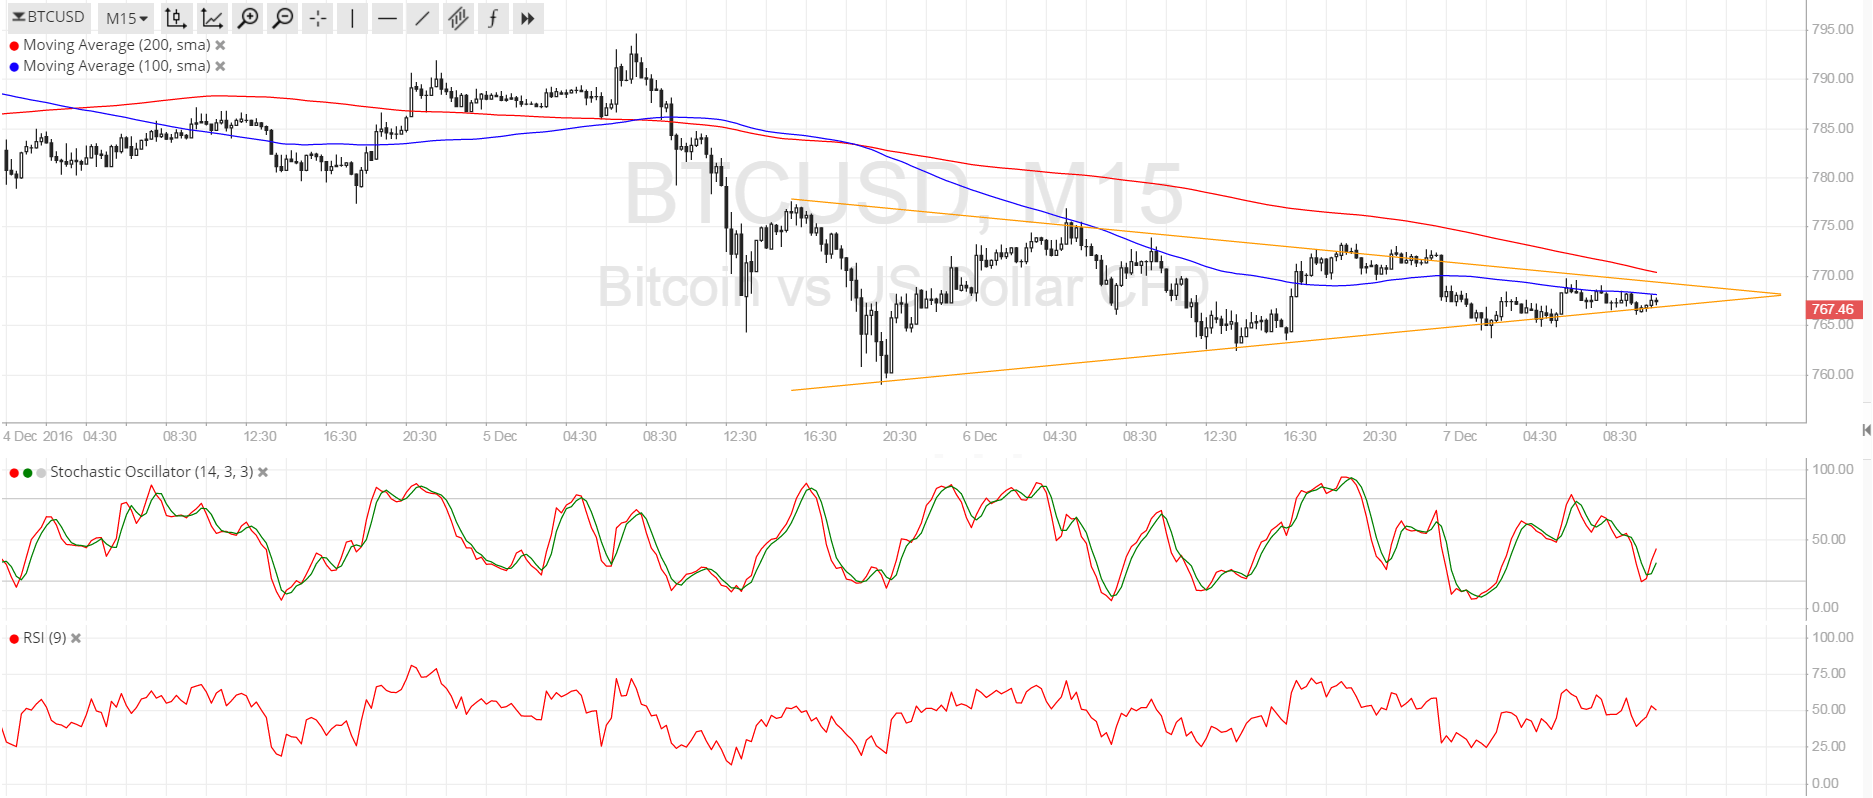 Bitcoin Price Technical Analysis for 12/07/2016 - Short-Term Consolidation Breakout